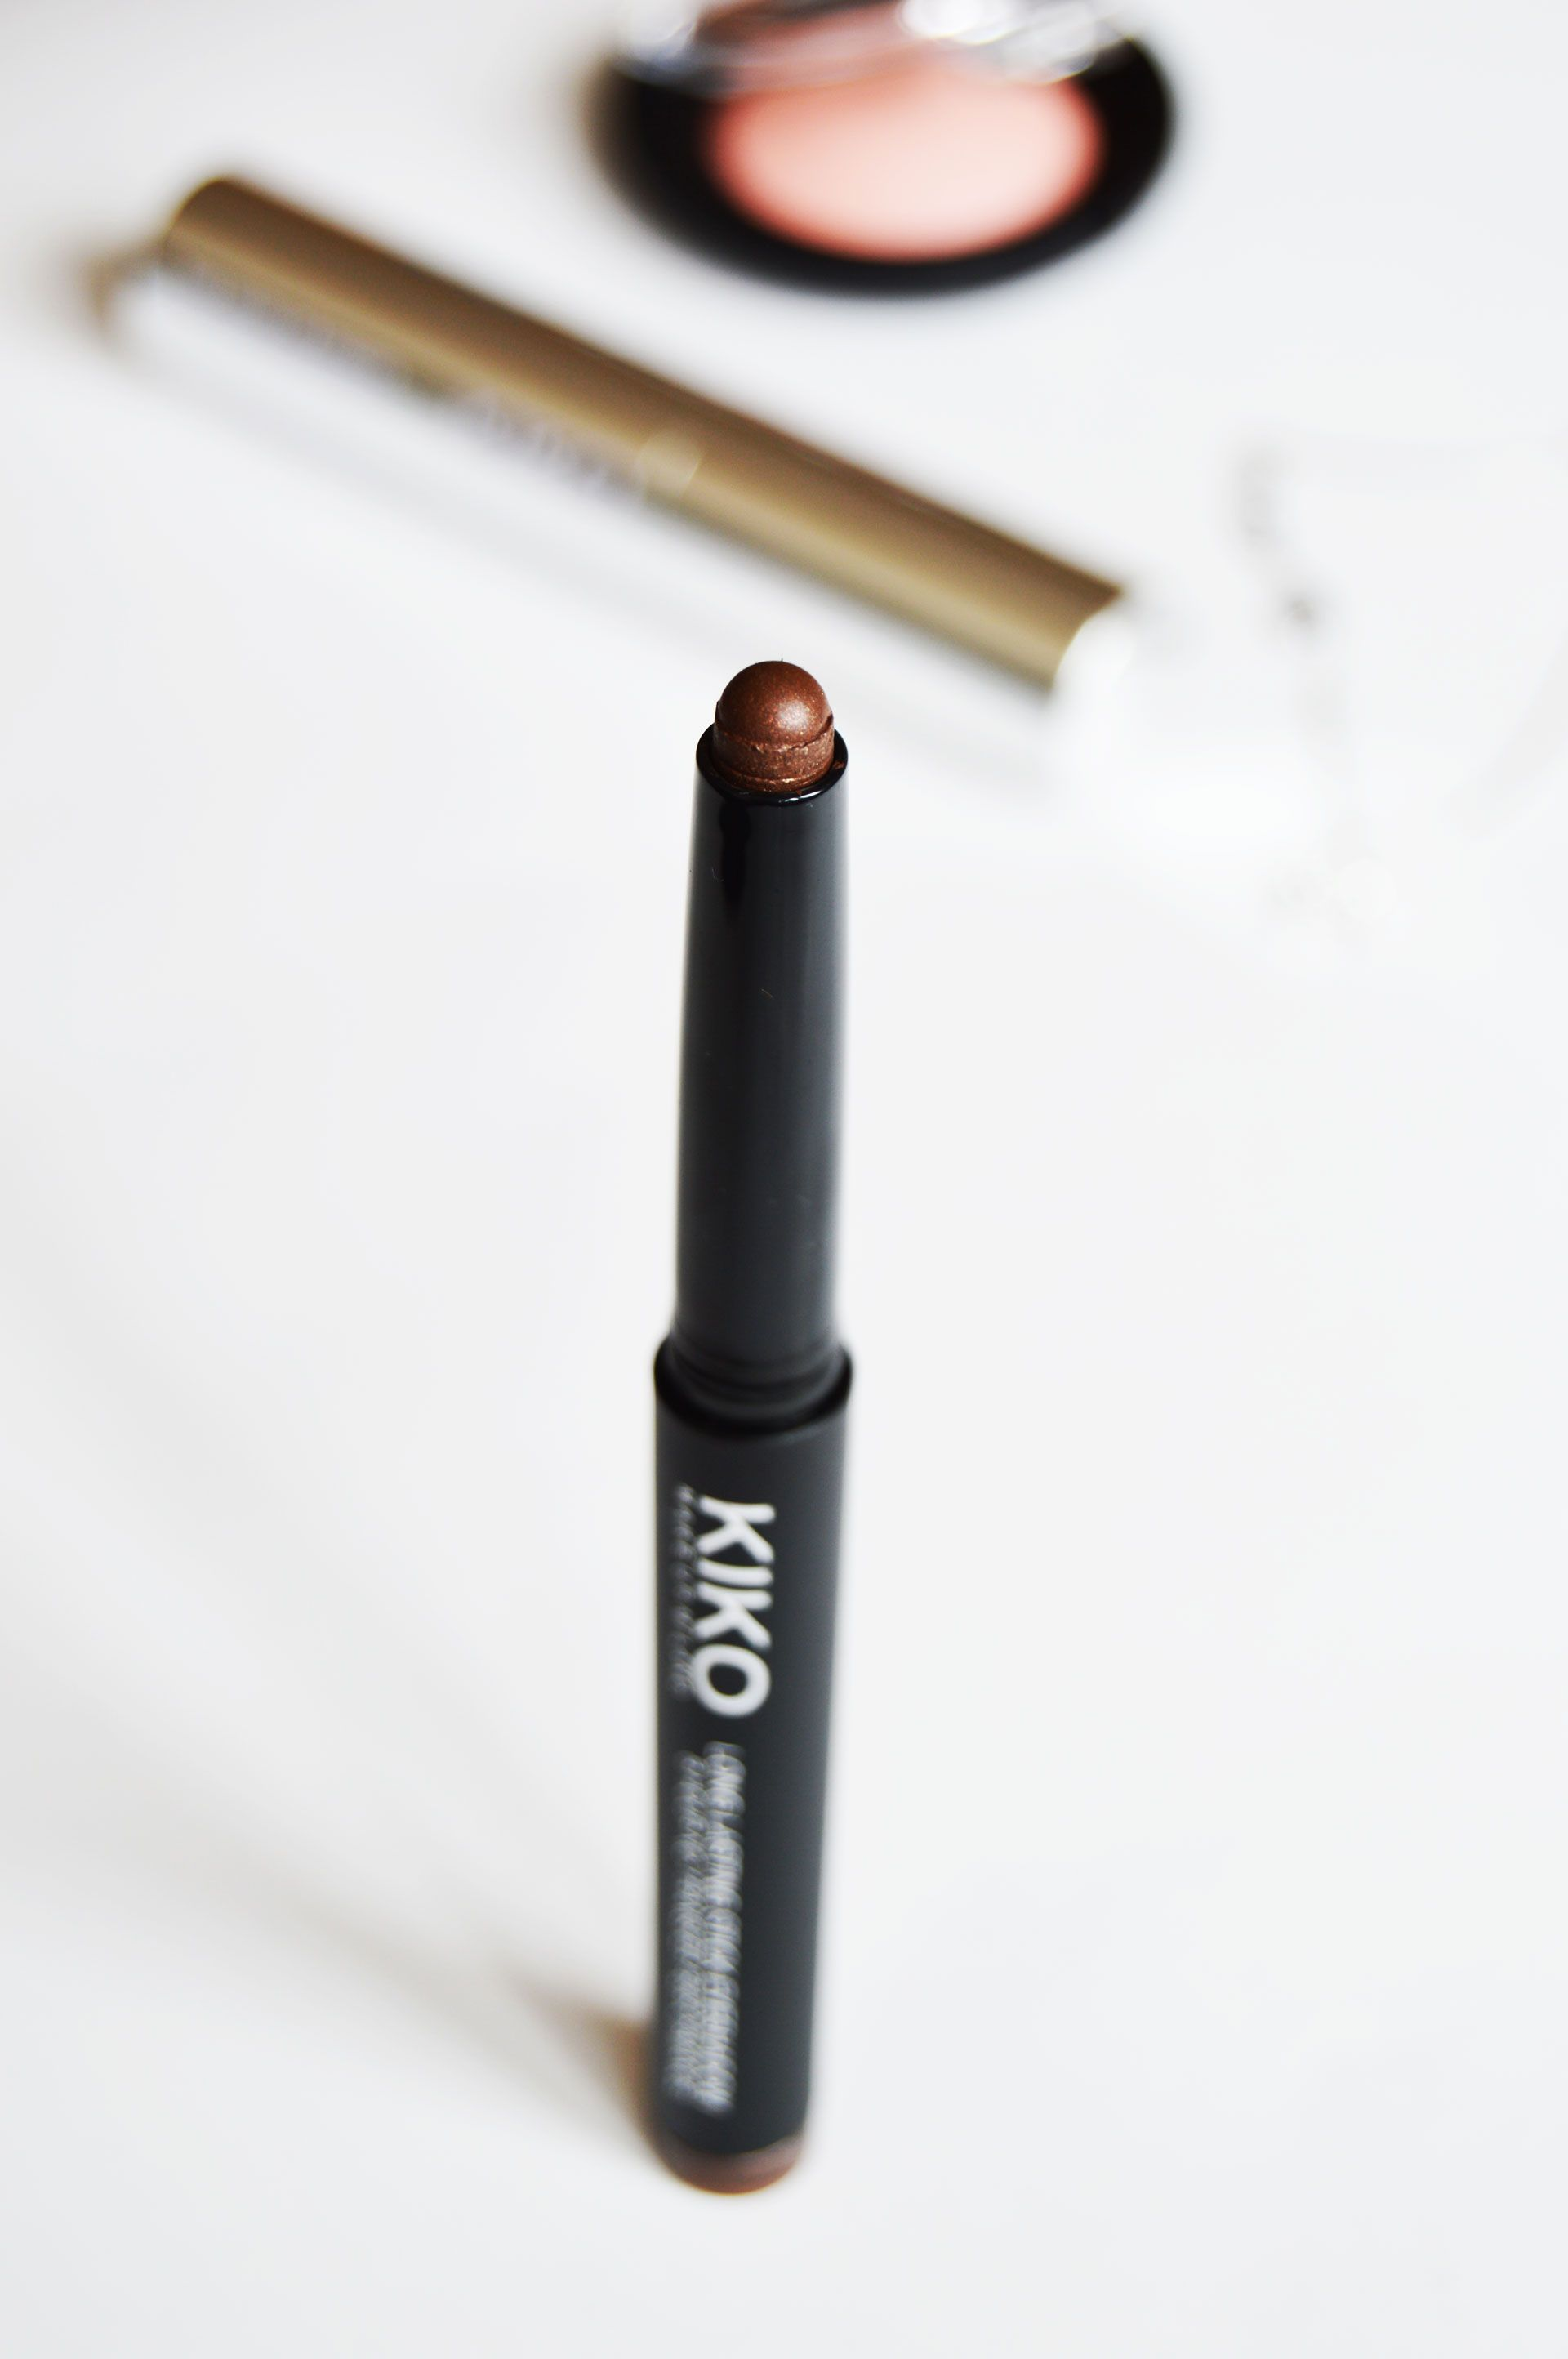 Kiko Long Lasting Eyeshadow in 04 Golden Chocolate Review